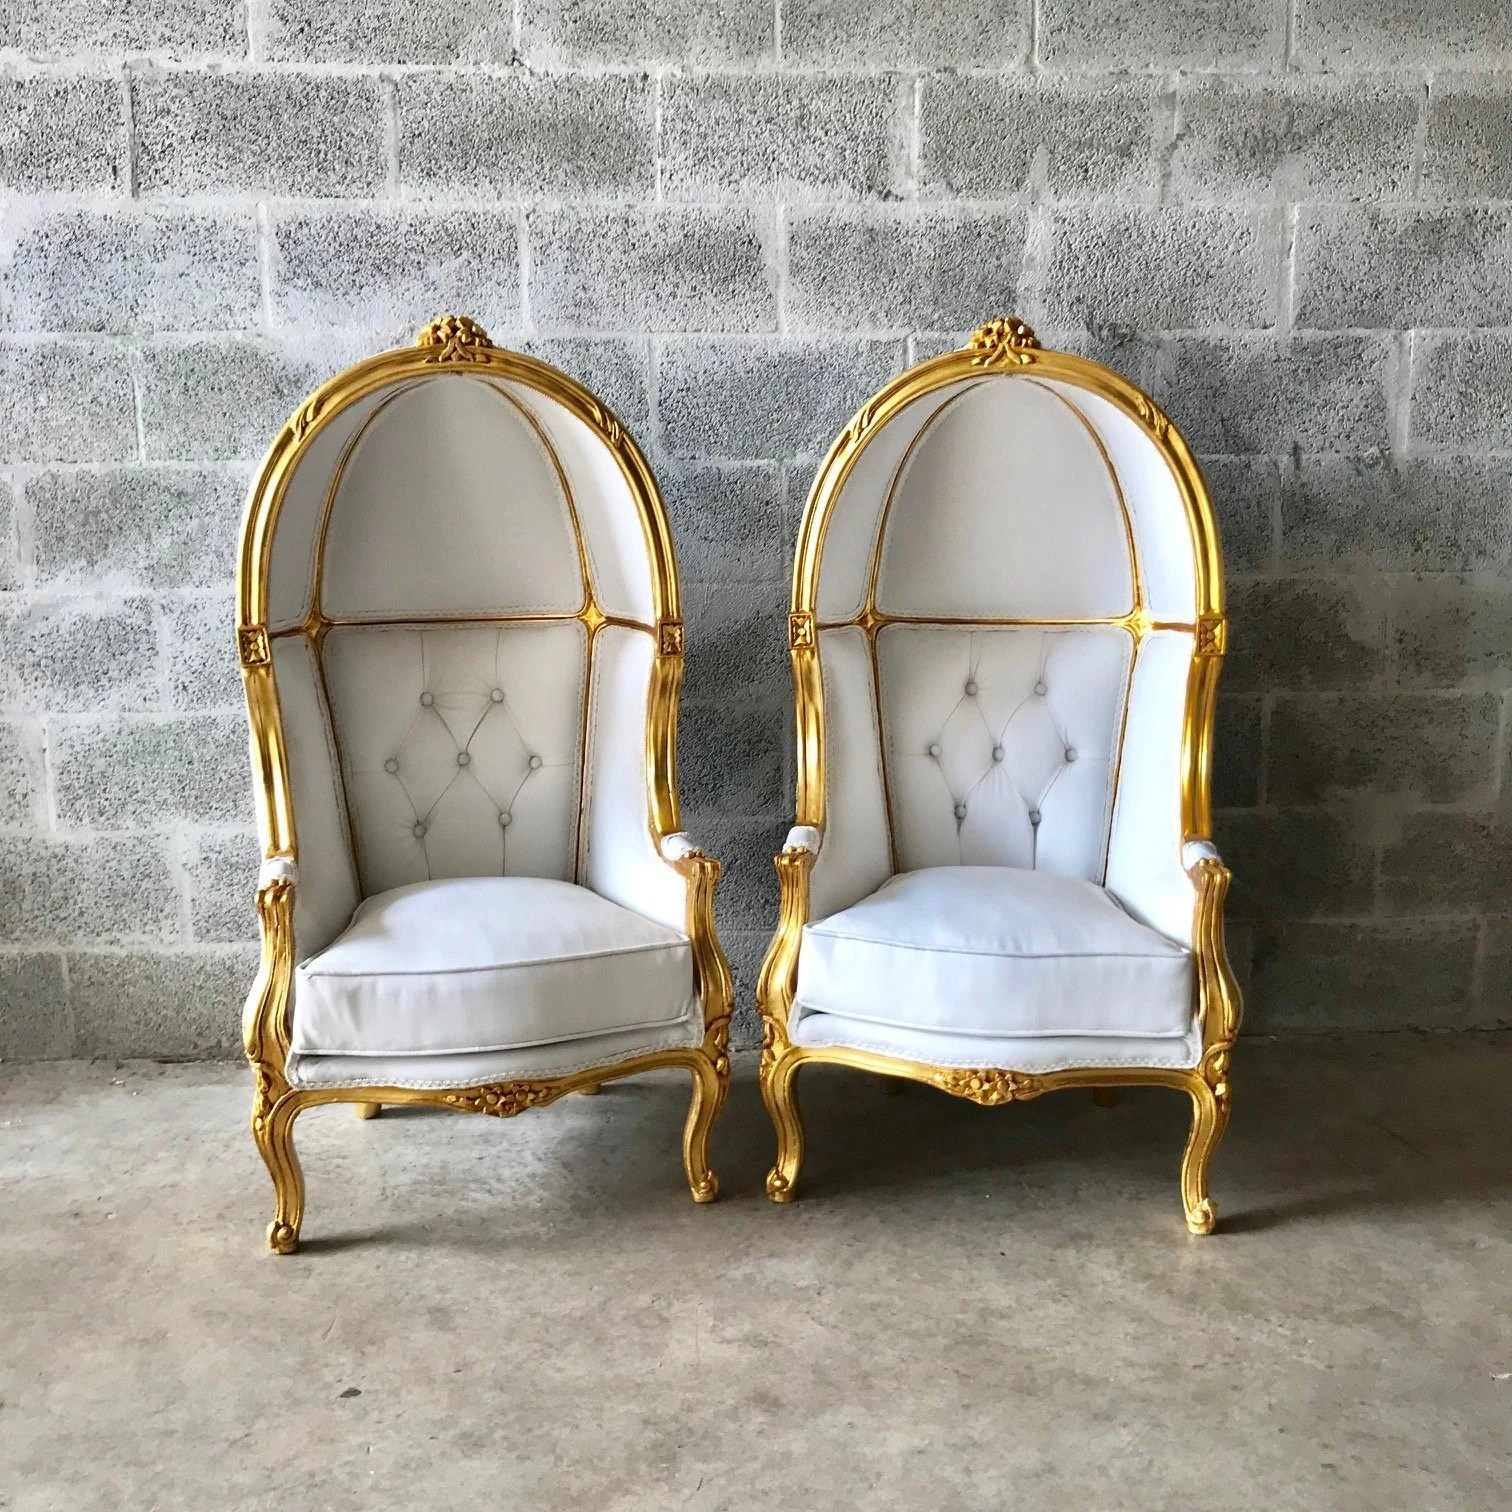 french canopy chair pier one imports covers reserved balloon throne 6 avail children size gallery photo